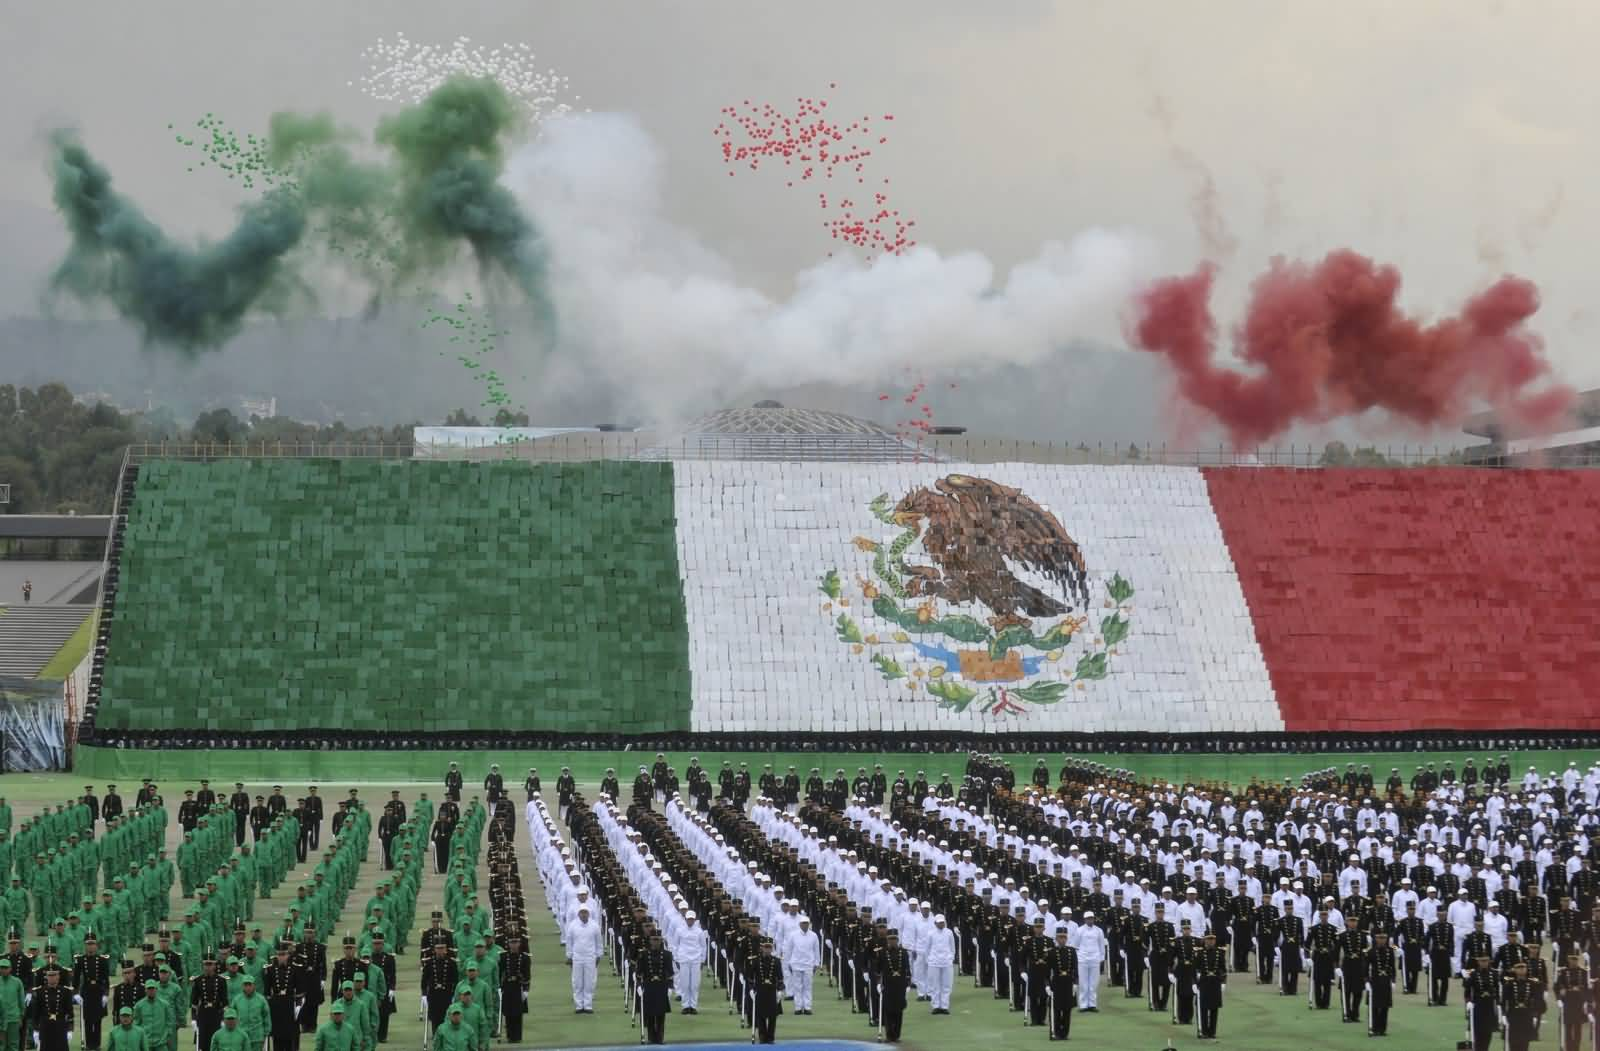 mexico independence day Mexican independence day and cinco de mayo by dianne macmillan provides information about two important holidays in mexico read the section about the mexican independence to give your students the history of this holiday.